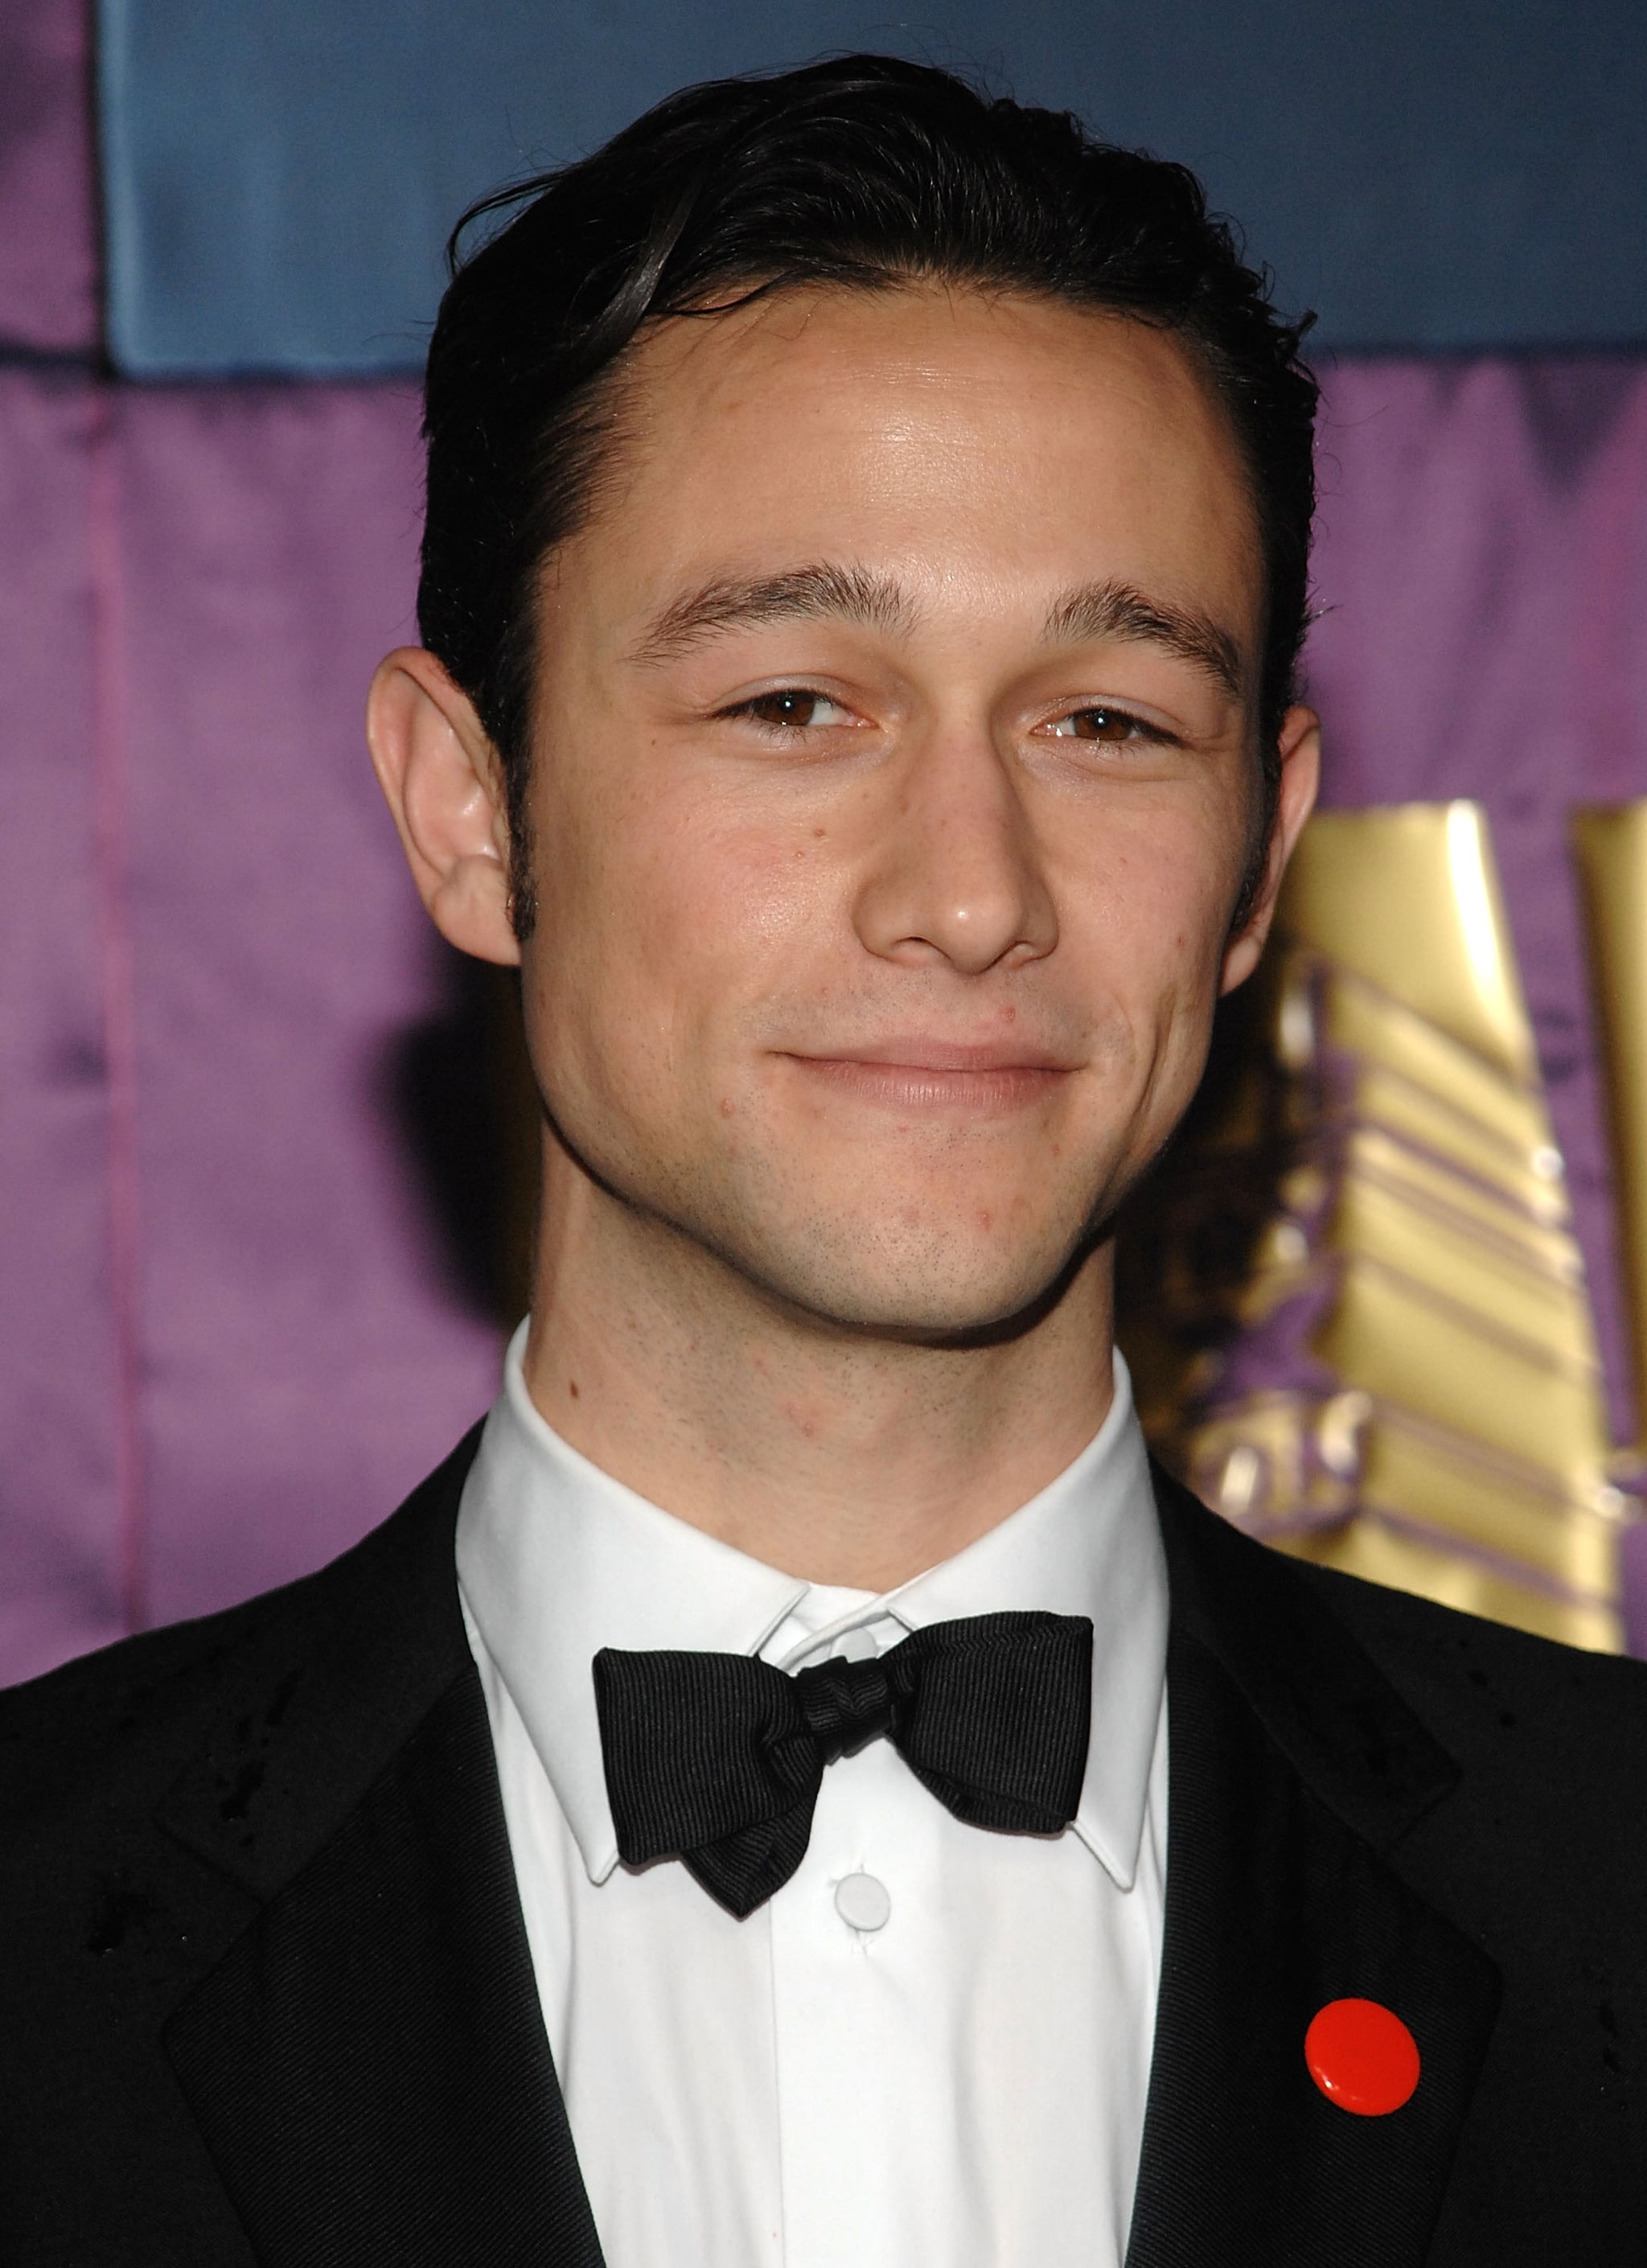 This Bow Tie Wowed Us in 2010